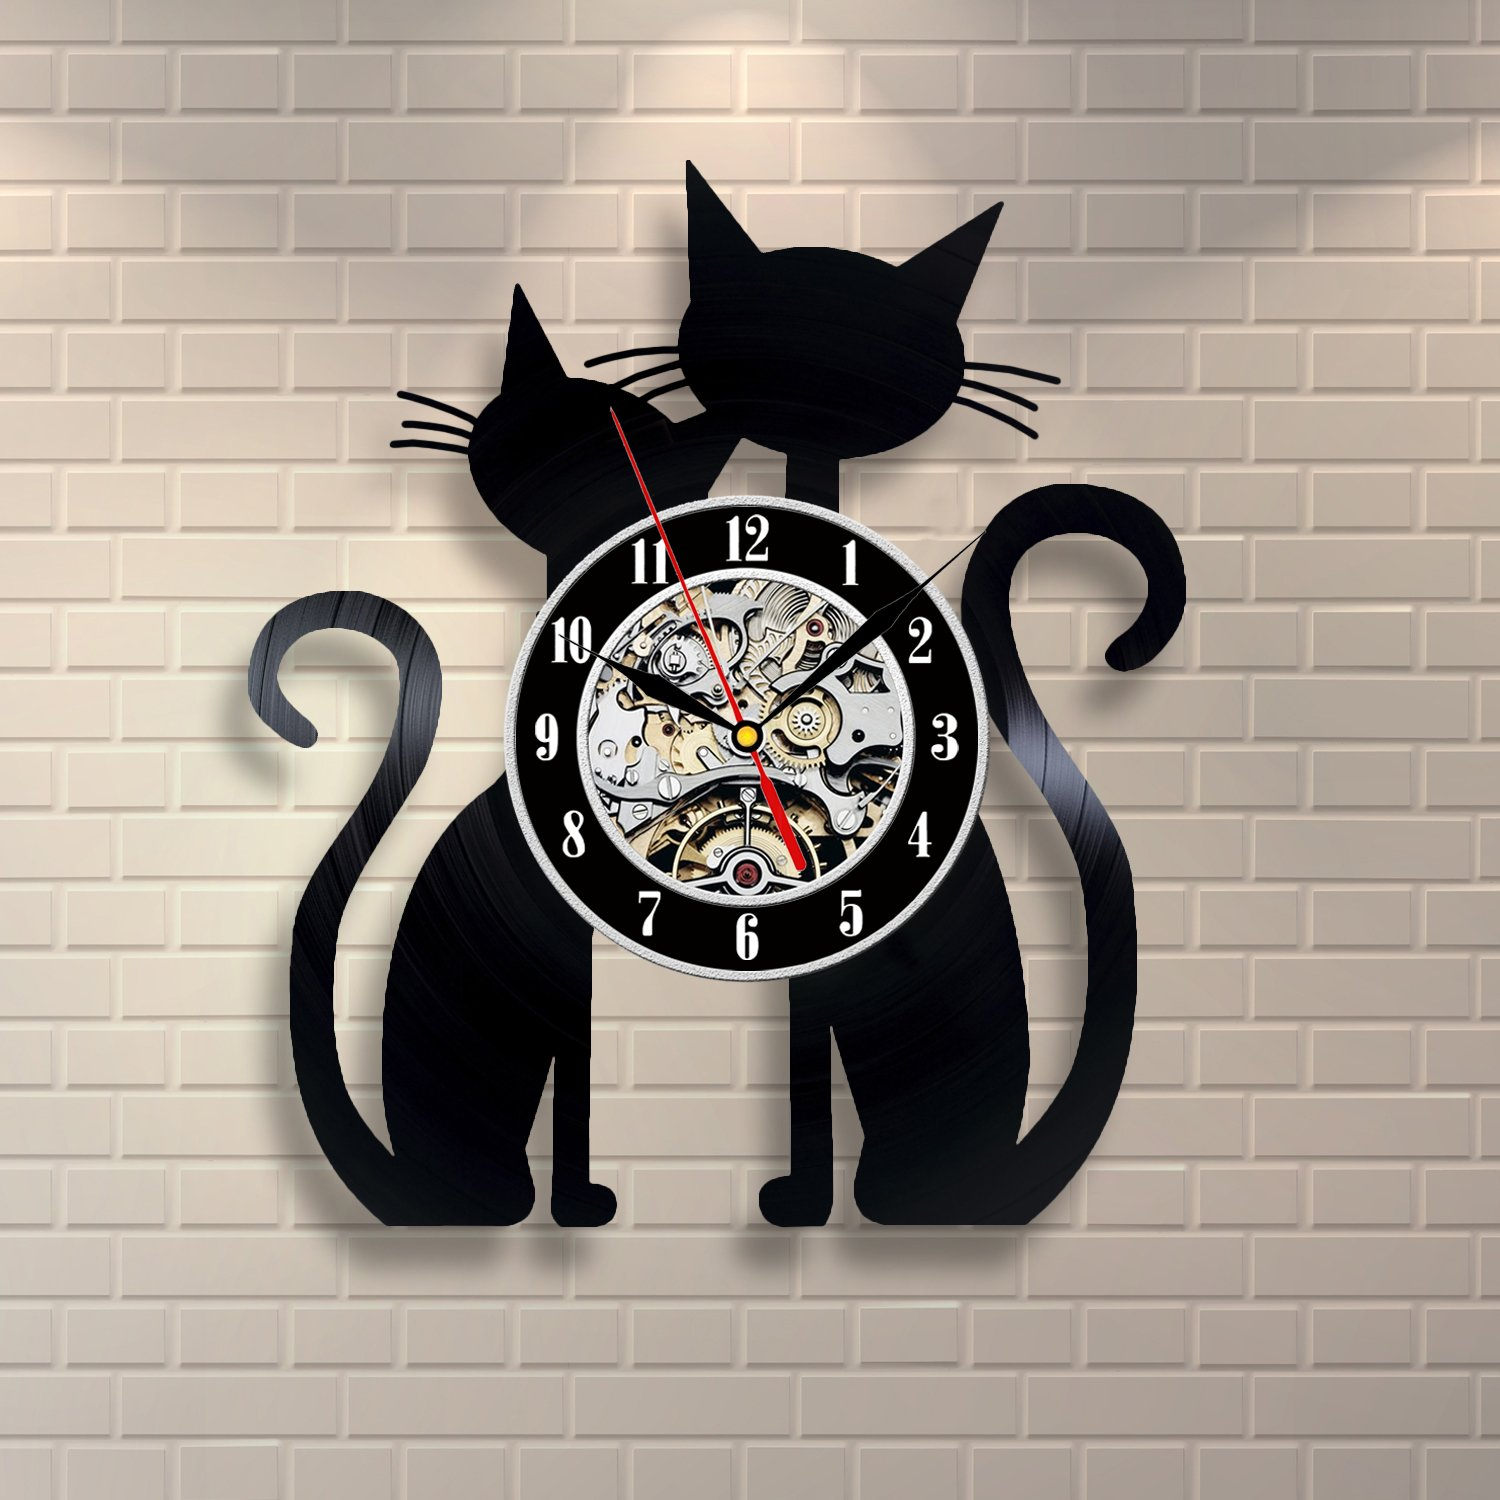 Amazon.com: Cat Vinyl Record Clock Home Design Room Art Decor Animals: Home & Kitchen